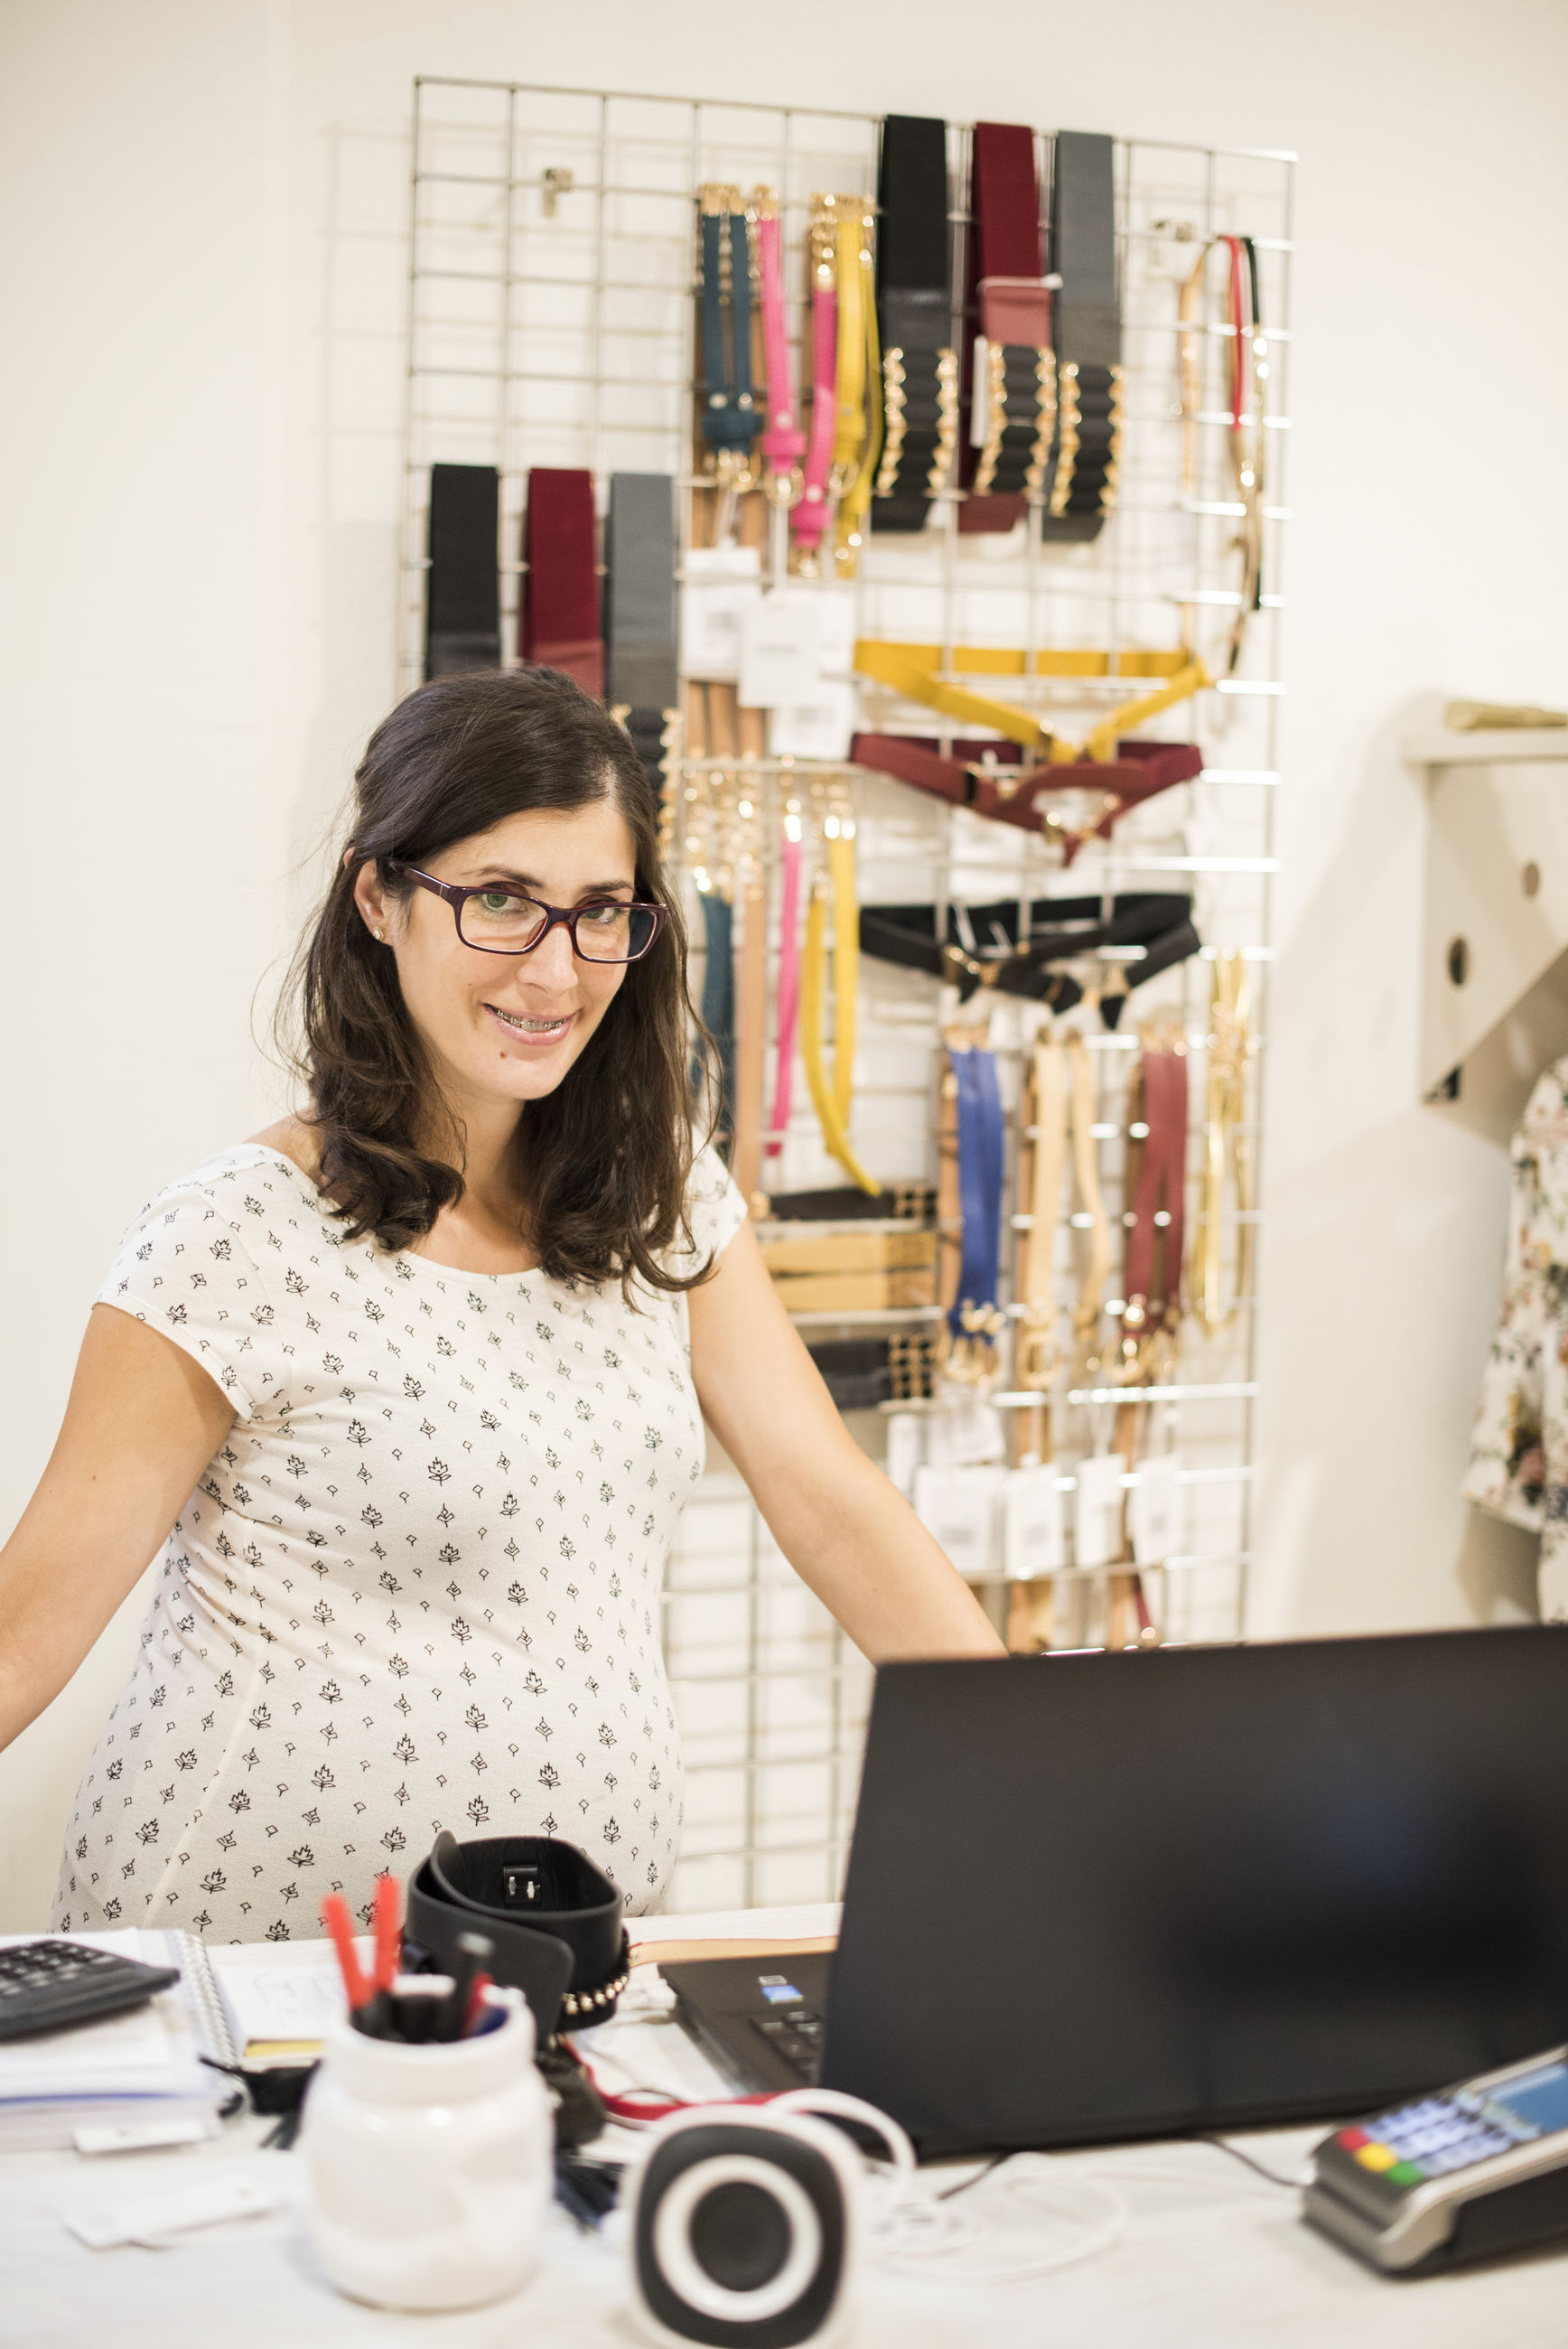 Portrait of pregnant woman using laptop while standing in clothing store